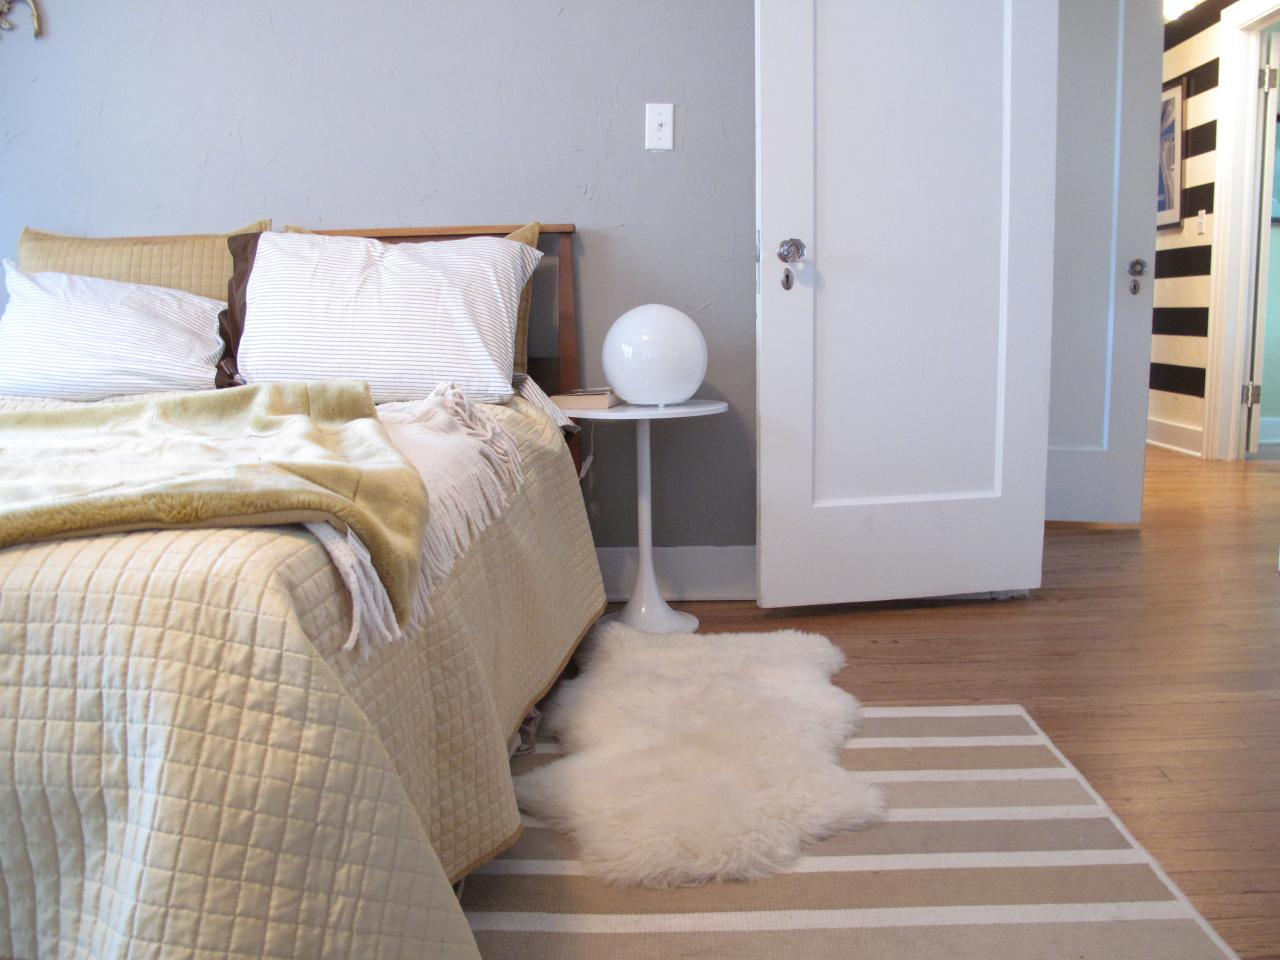 bedroom carpet ideas pictures options ideas hgtv 17316 | original layered rugs kathleen shannon bedroom s4x3 rend hgtvcom 1280 960